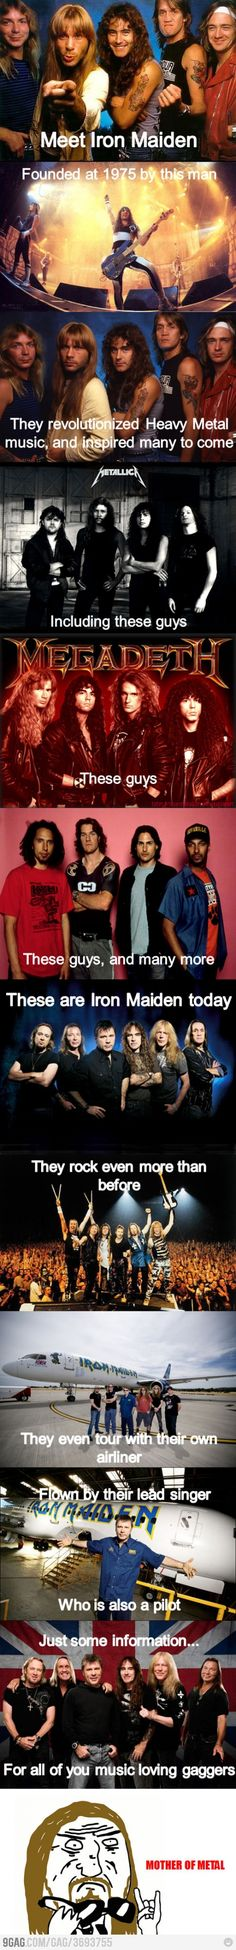 LOL!  For my brother, of course!  Who ELSE loves Iron Maiden this much?!